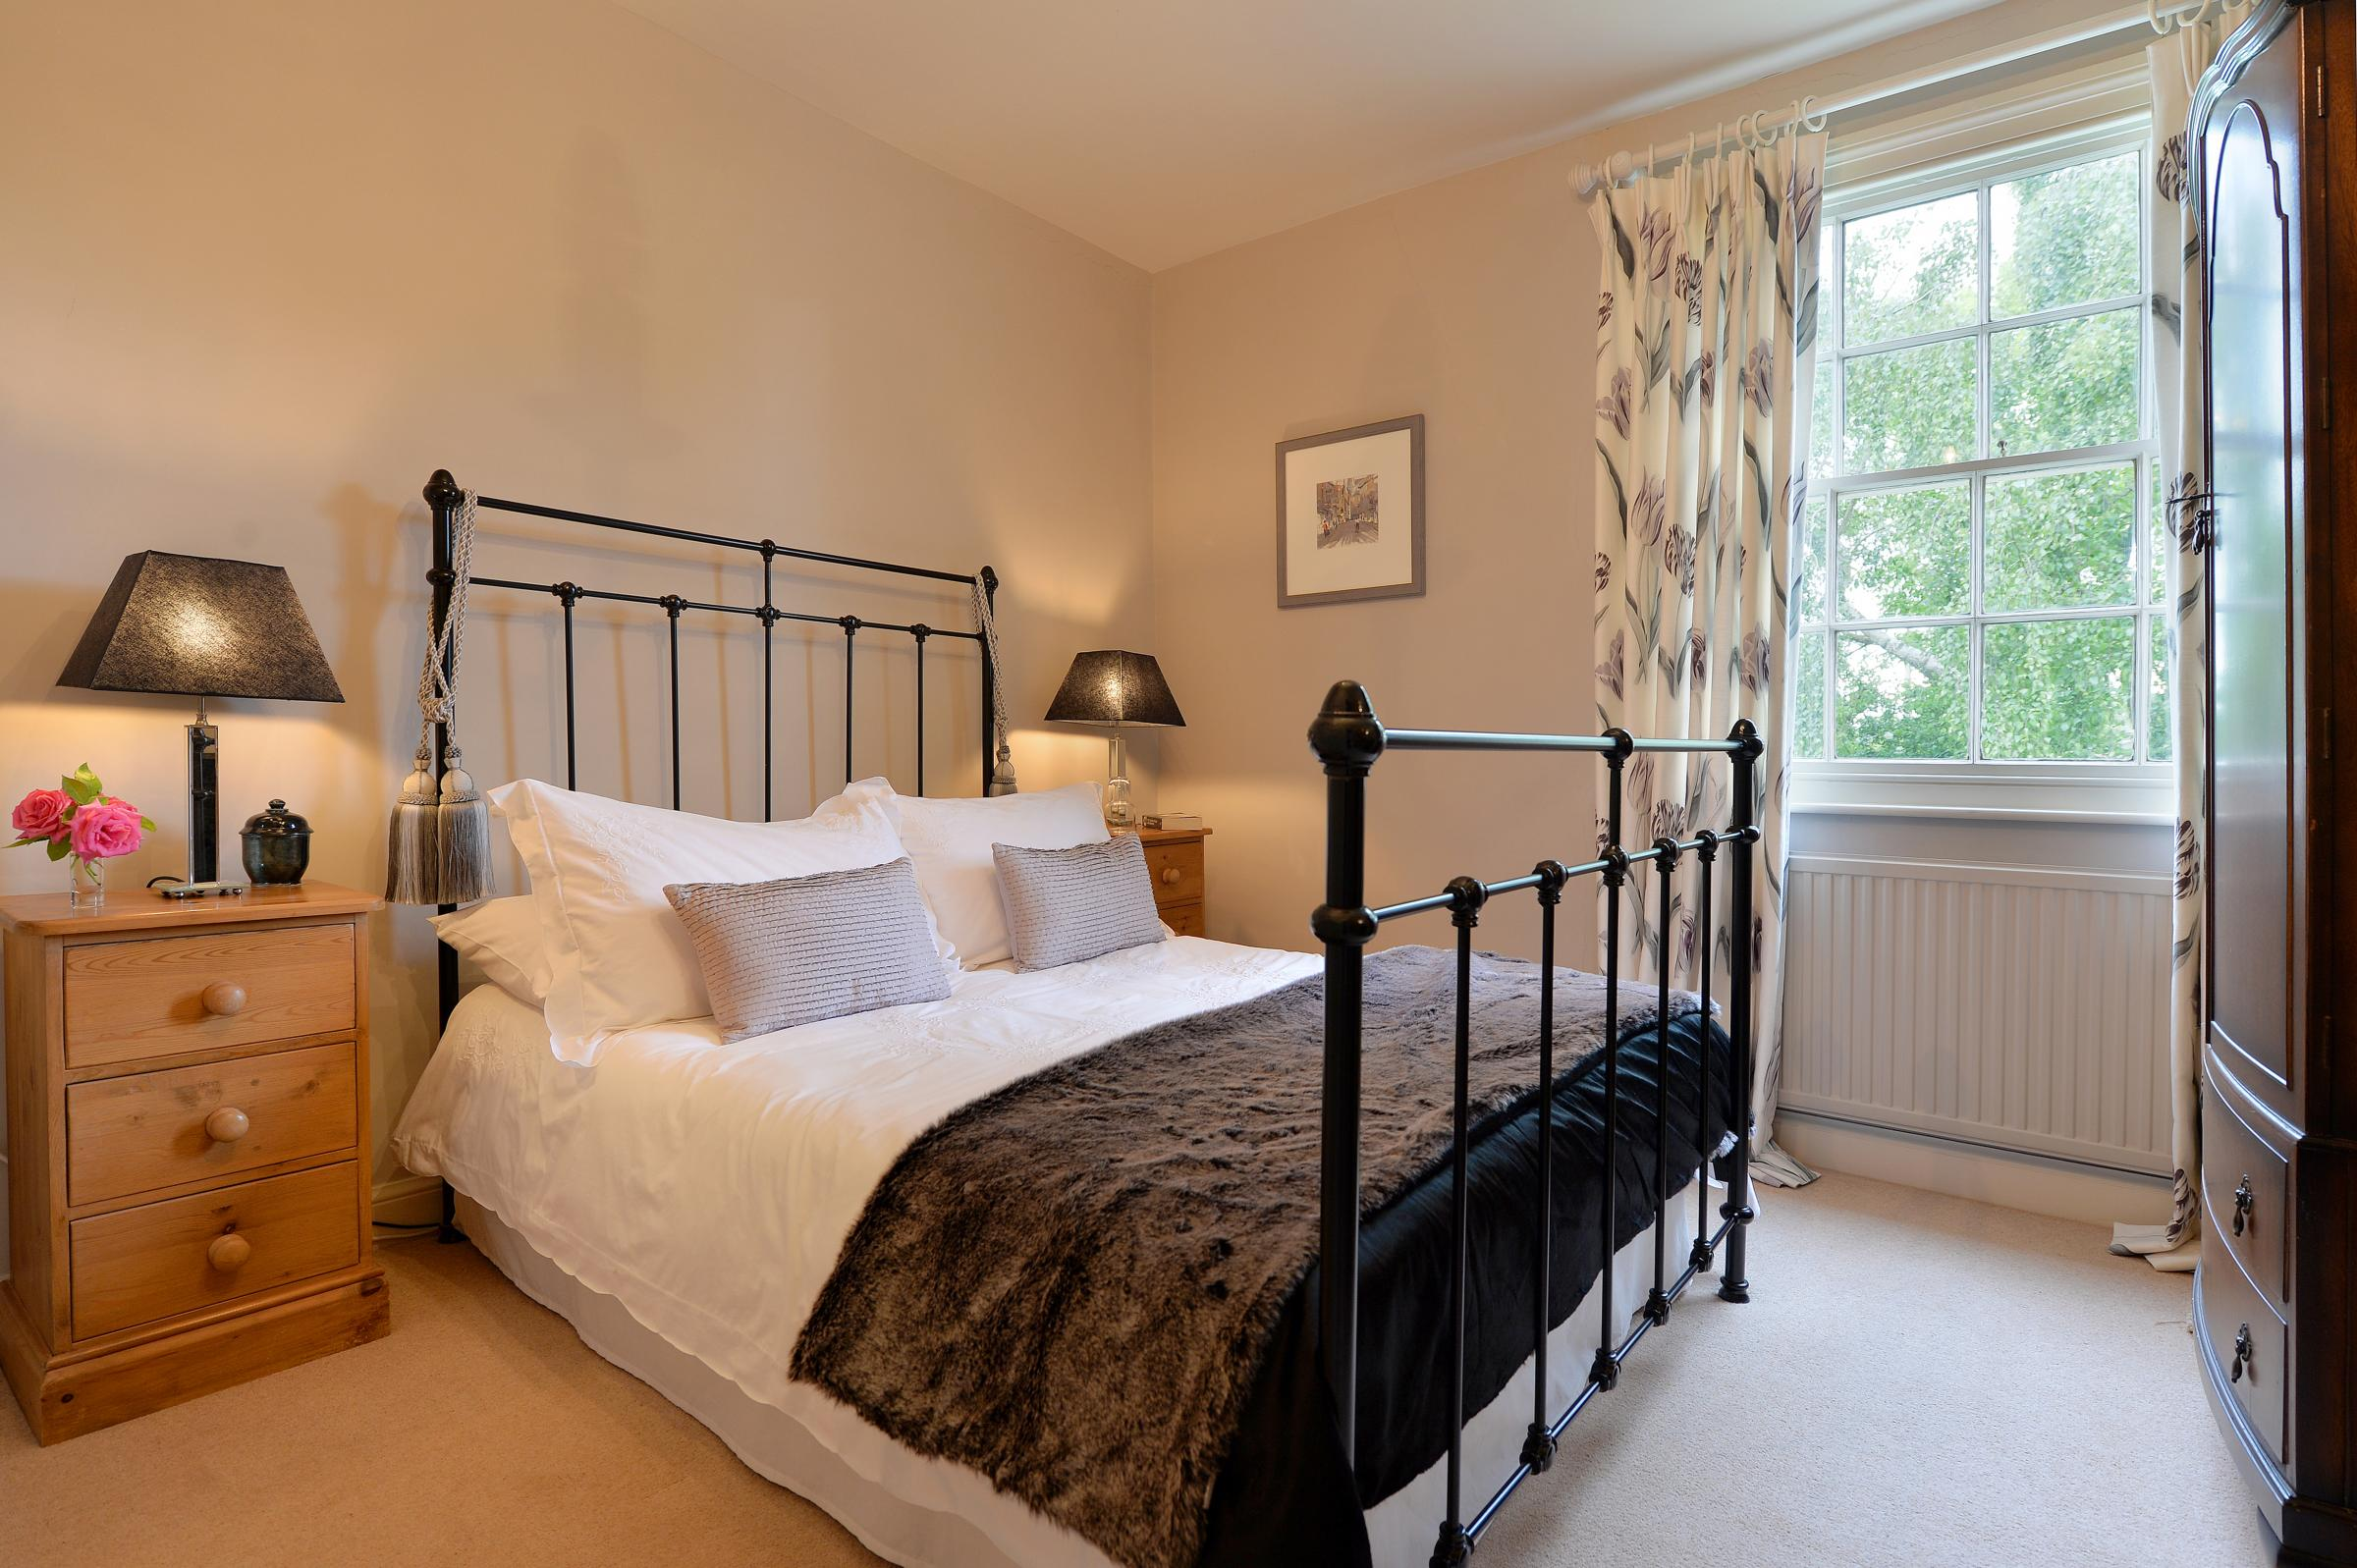 Interiors North Yorkshire interior designer creates homes that